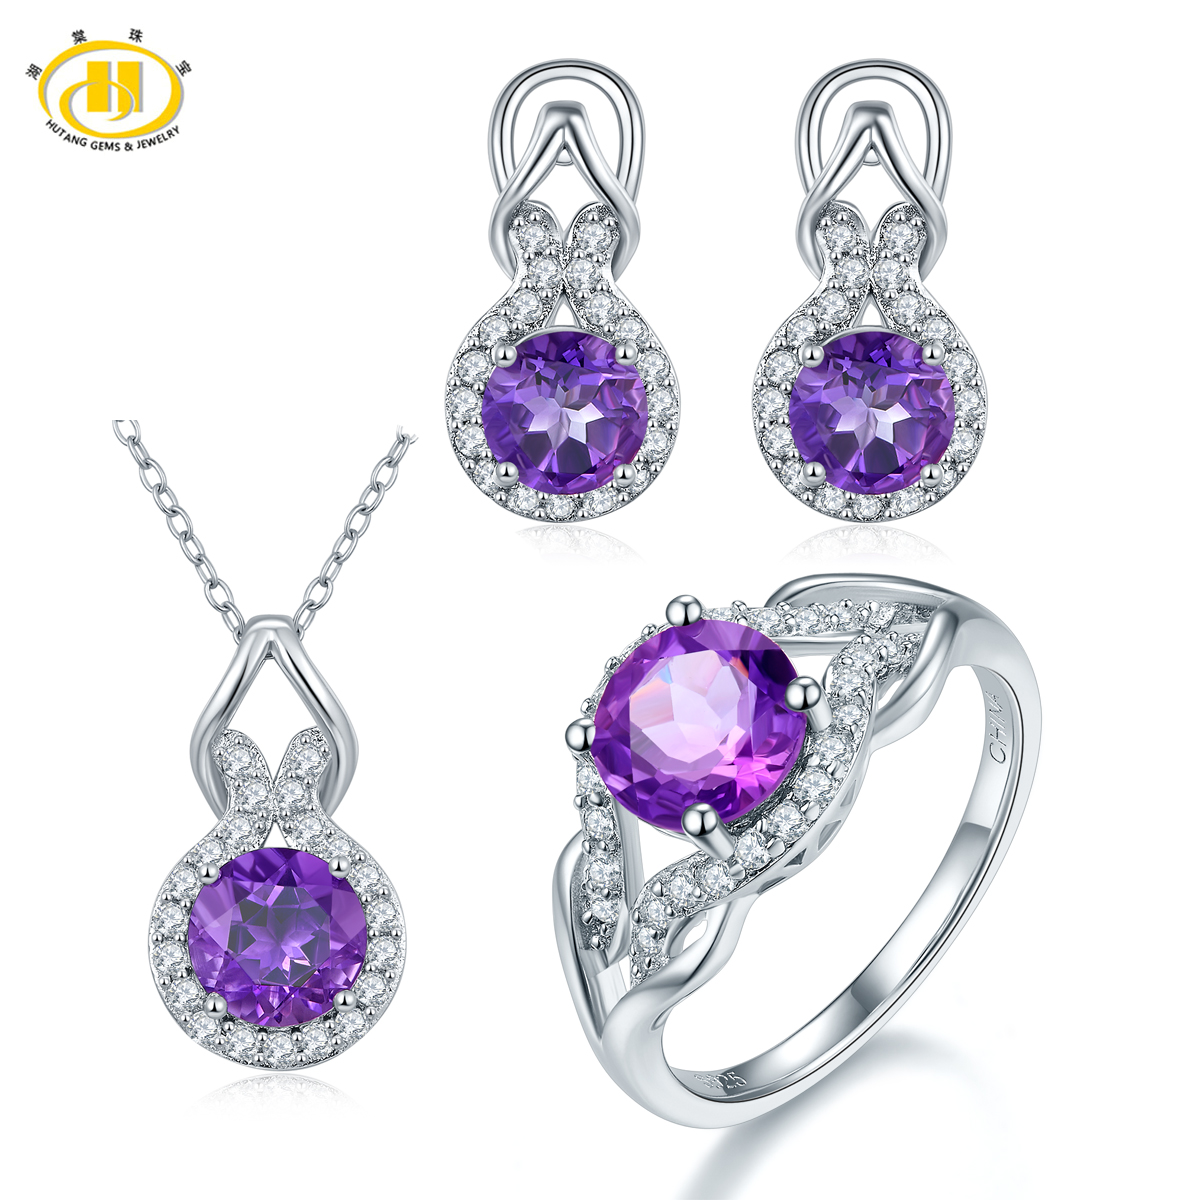 Здесь продается  Hutang Natural Amethyst Solid 925 Sterling Silver Jewerly Sets Earrings Pendant Ring Gemstone Fine Jewelry High Quality 2017  Ювелирные изделия и часы